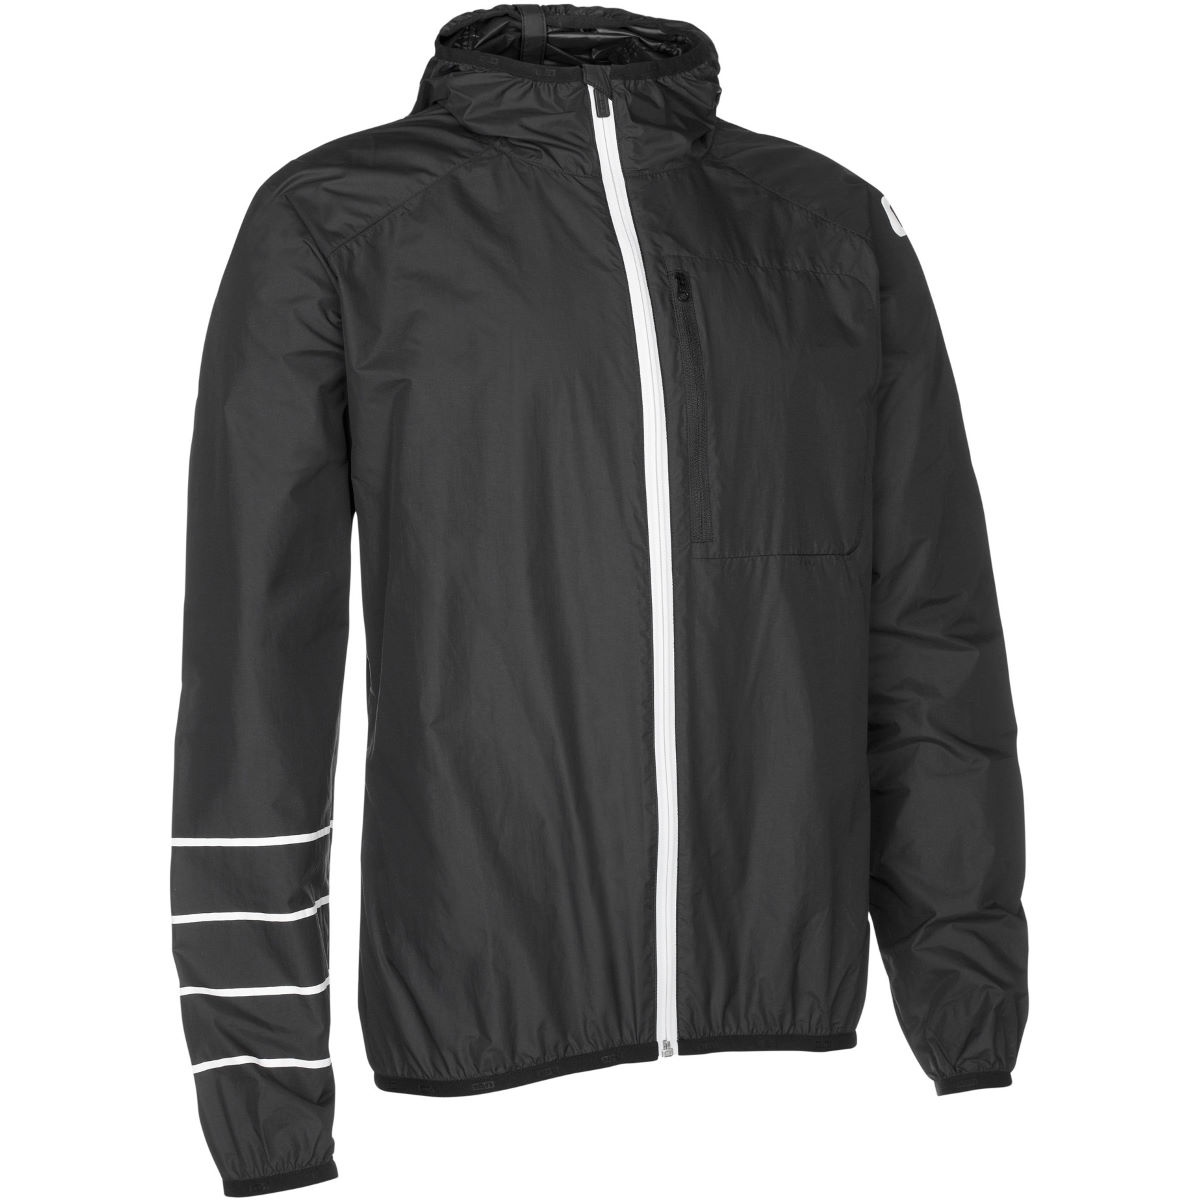 Veste Ion Strato Wind - Extra Extra Large Noir Coupe-vents vélo